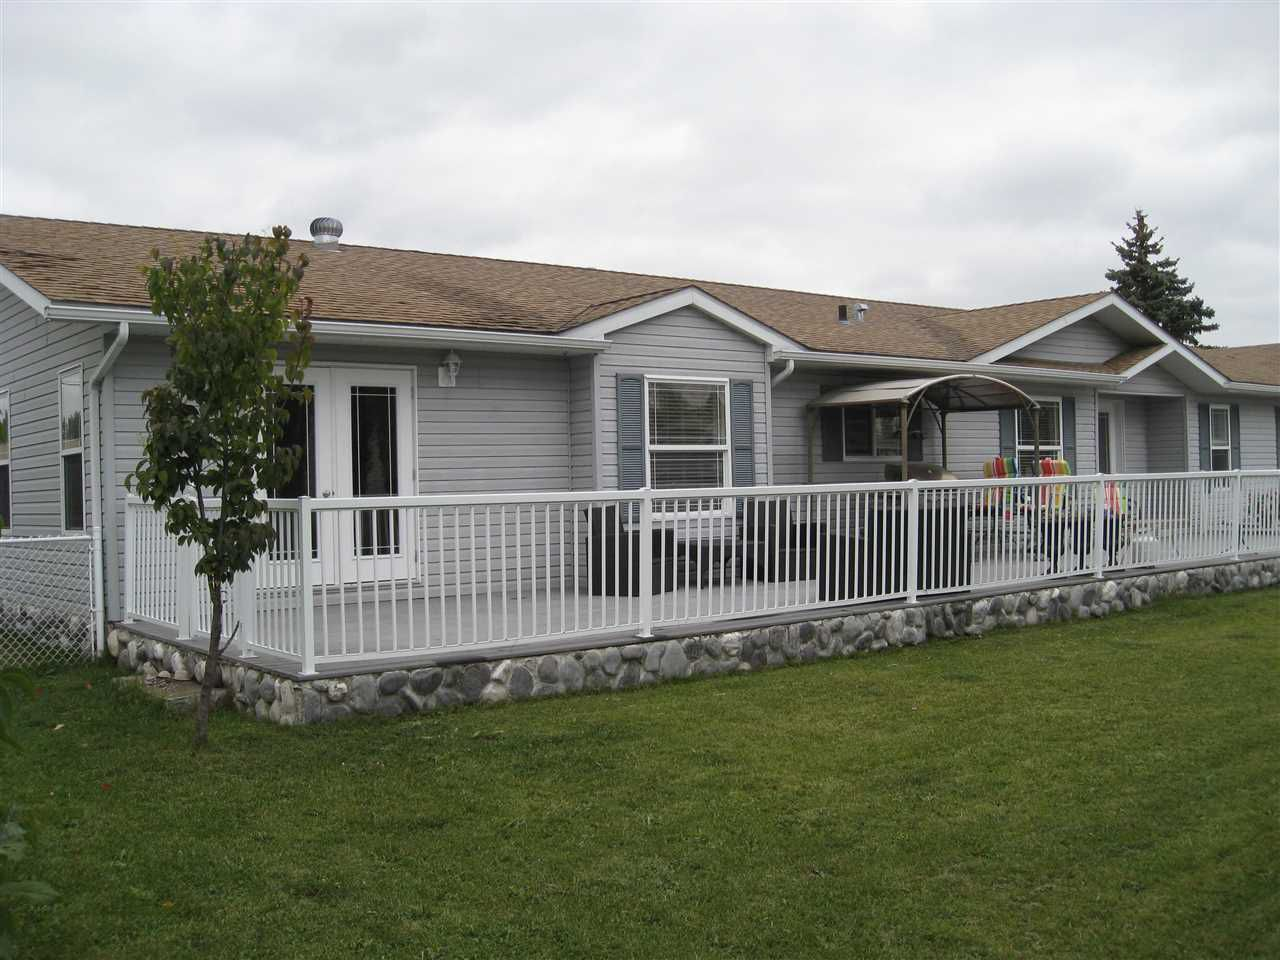 Main Photo: 5125 49 Street: Wabamun House for sale : MLS®# E4129468